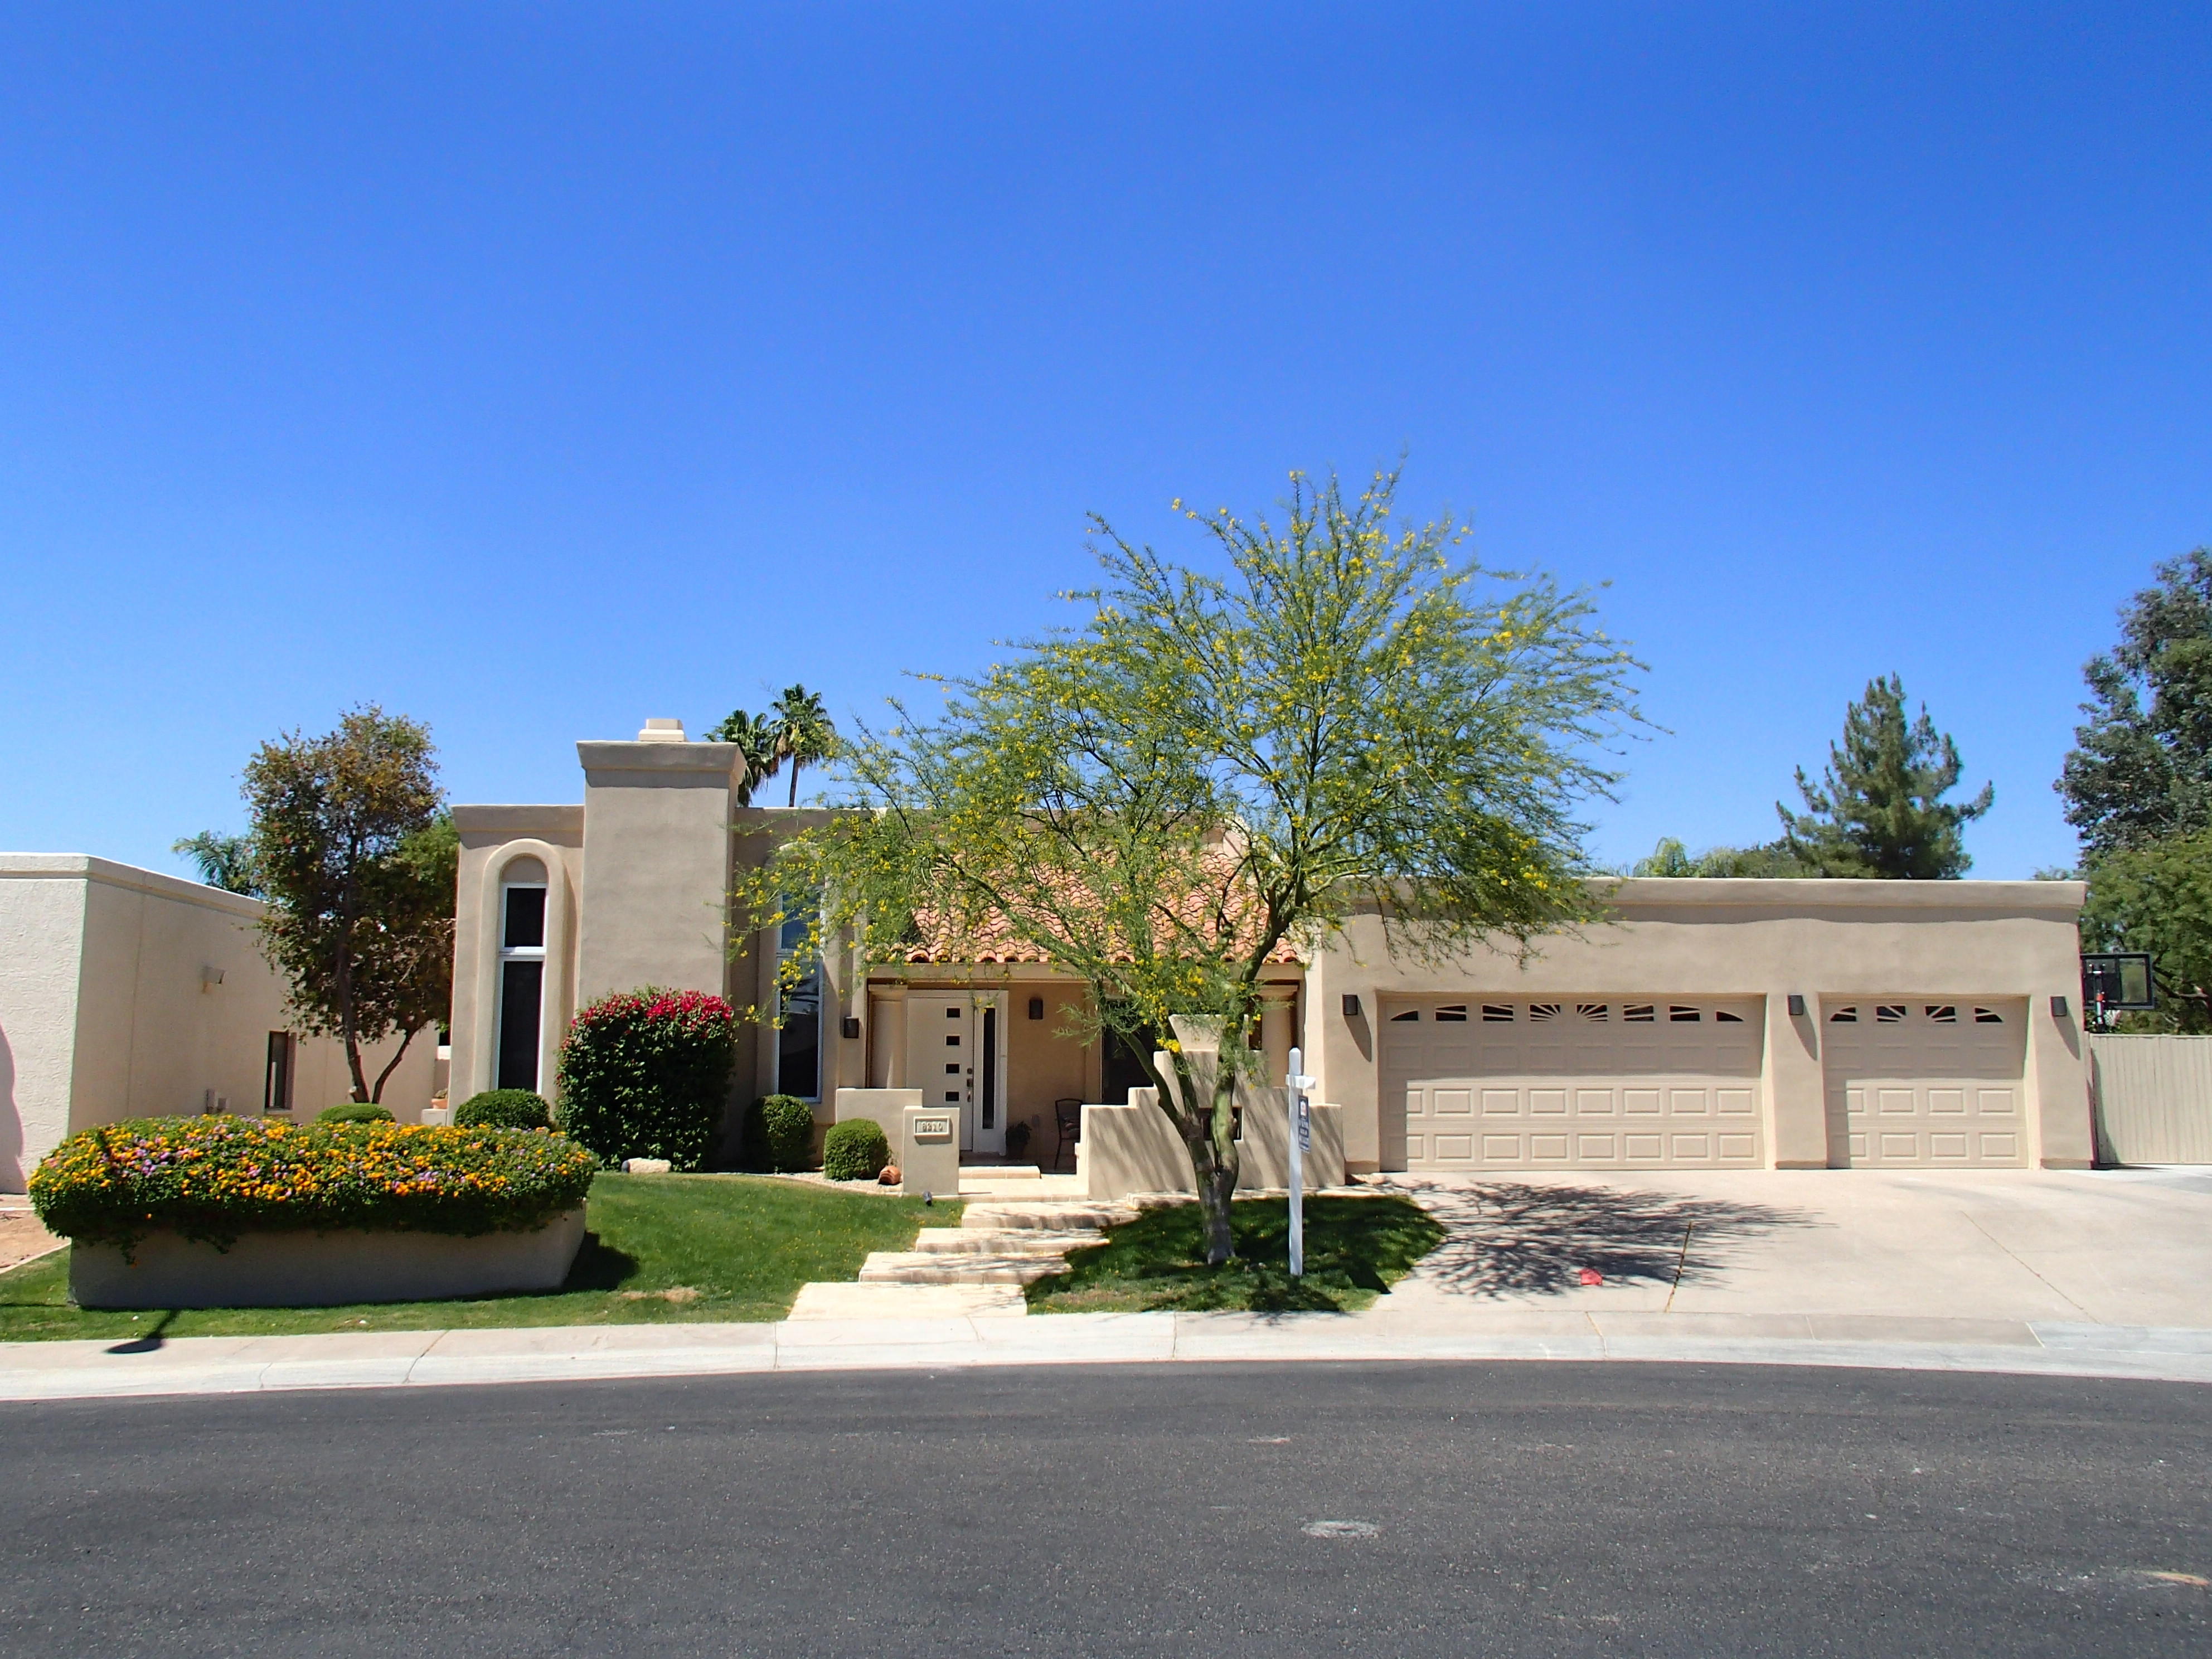 8210 E. Del Claro at the Island in McCormick Ranch